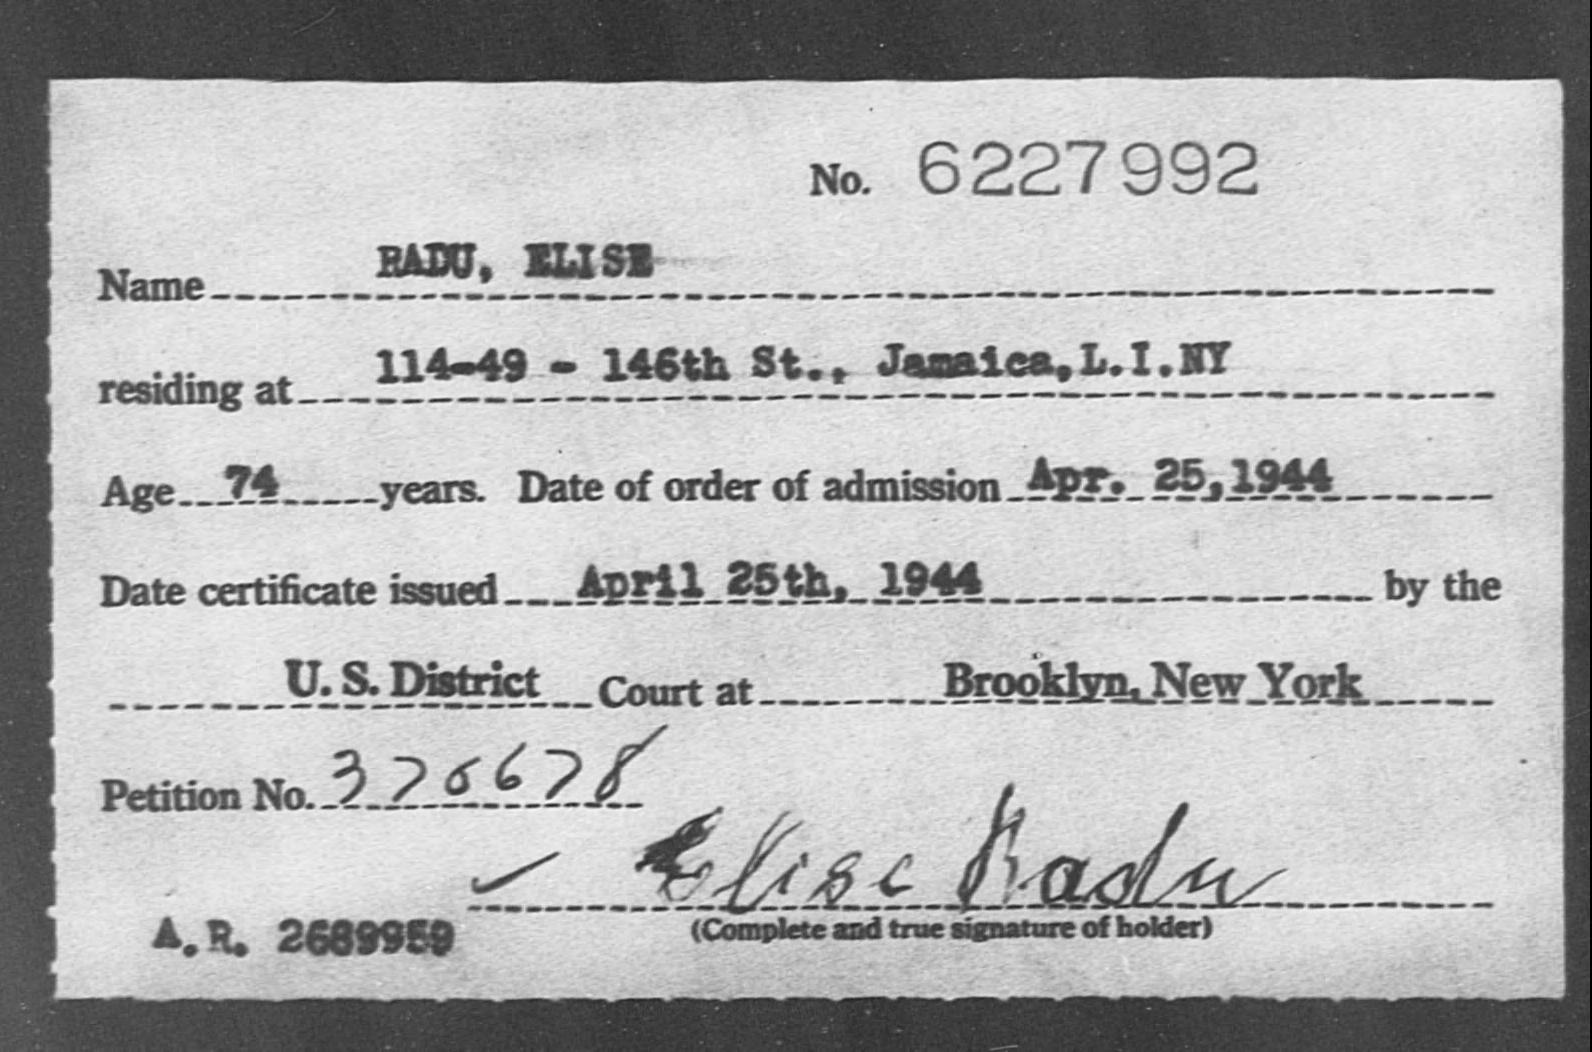 RADU, ELISE - Born: [BLANK], Naturalized: 1944